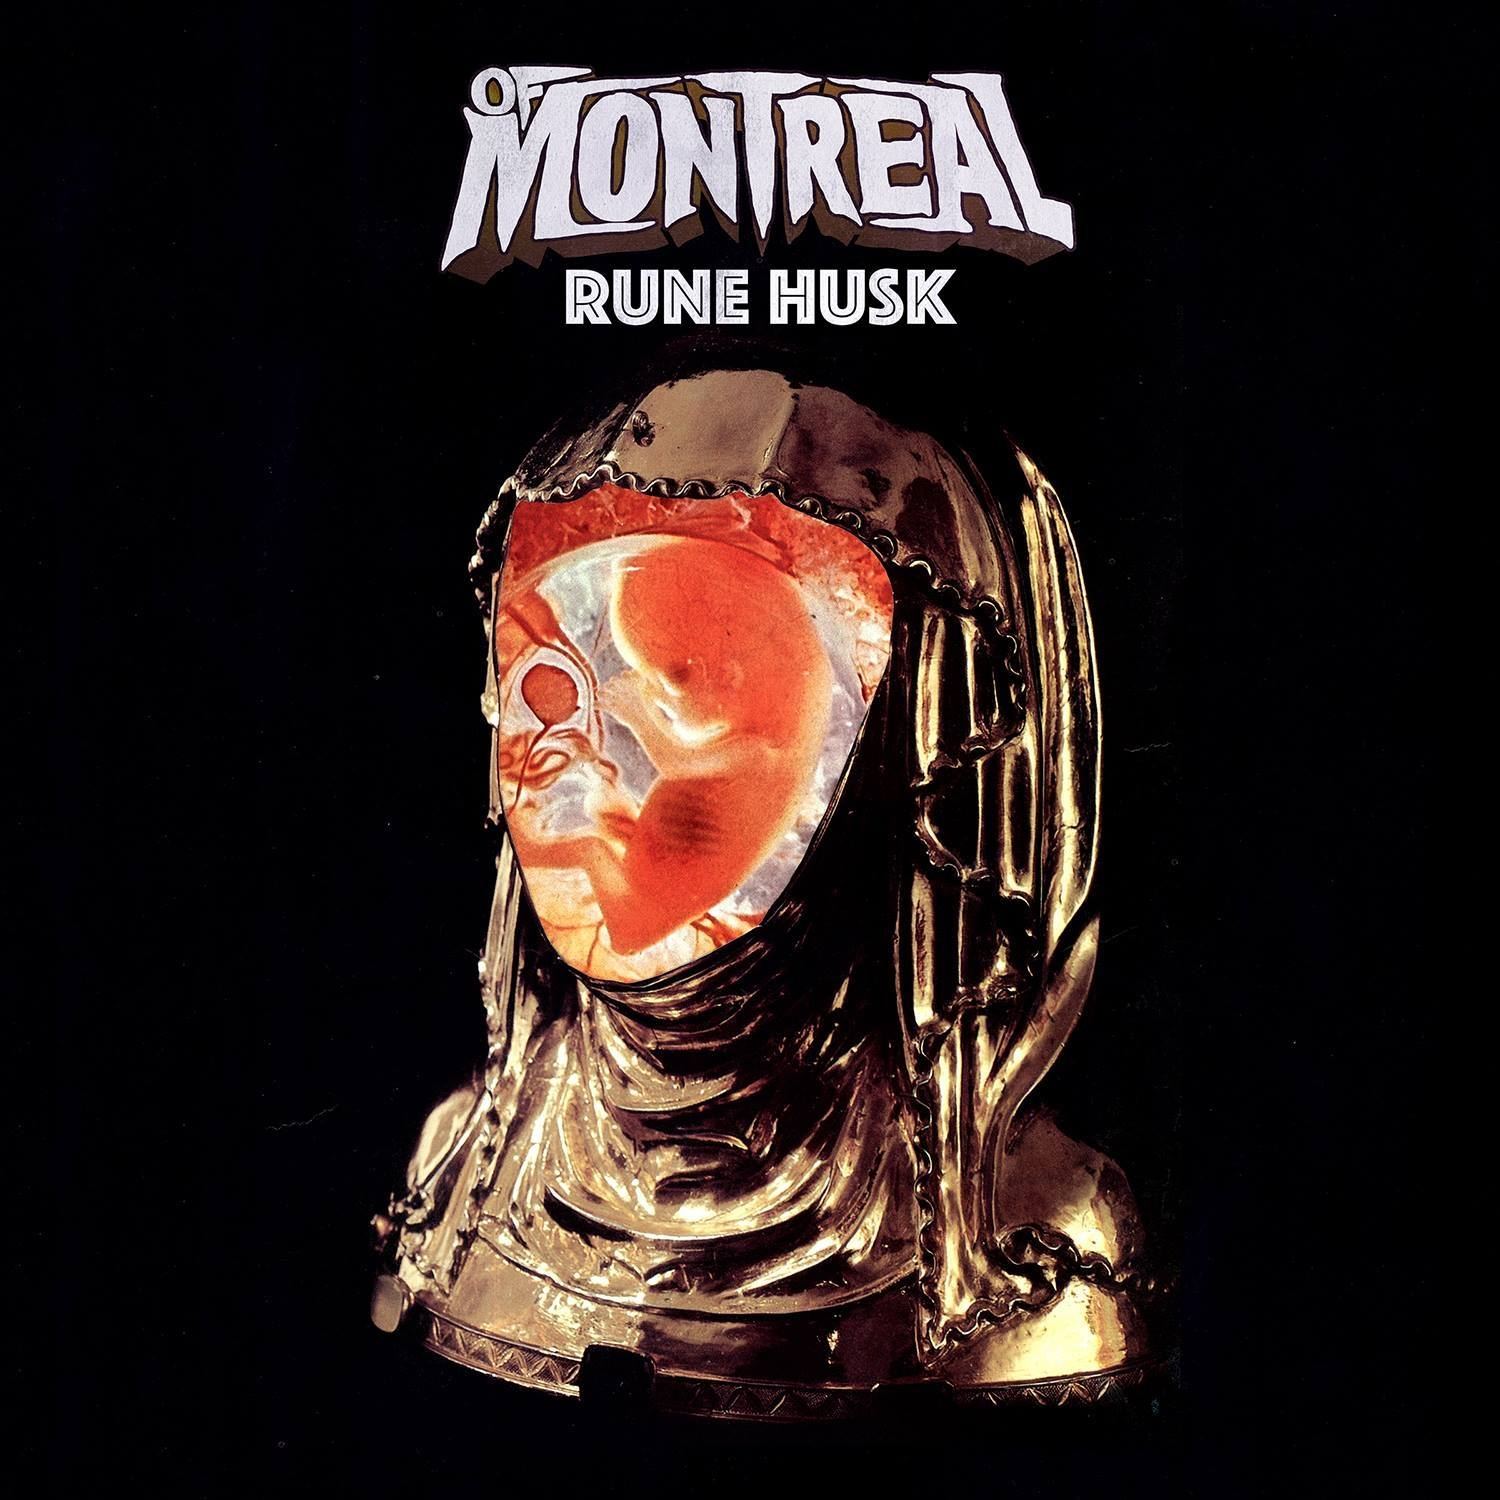 of montreal rune husk stream Of Montreal unveil surprise Rune Husk EP: Stream/download